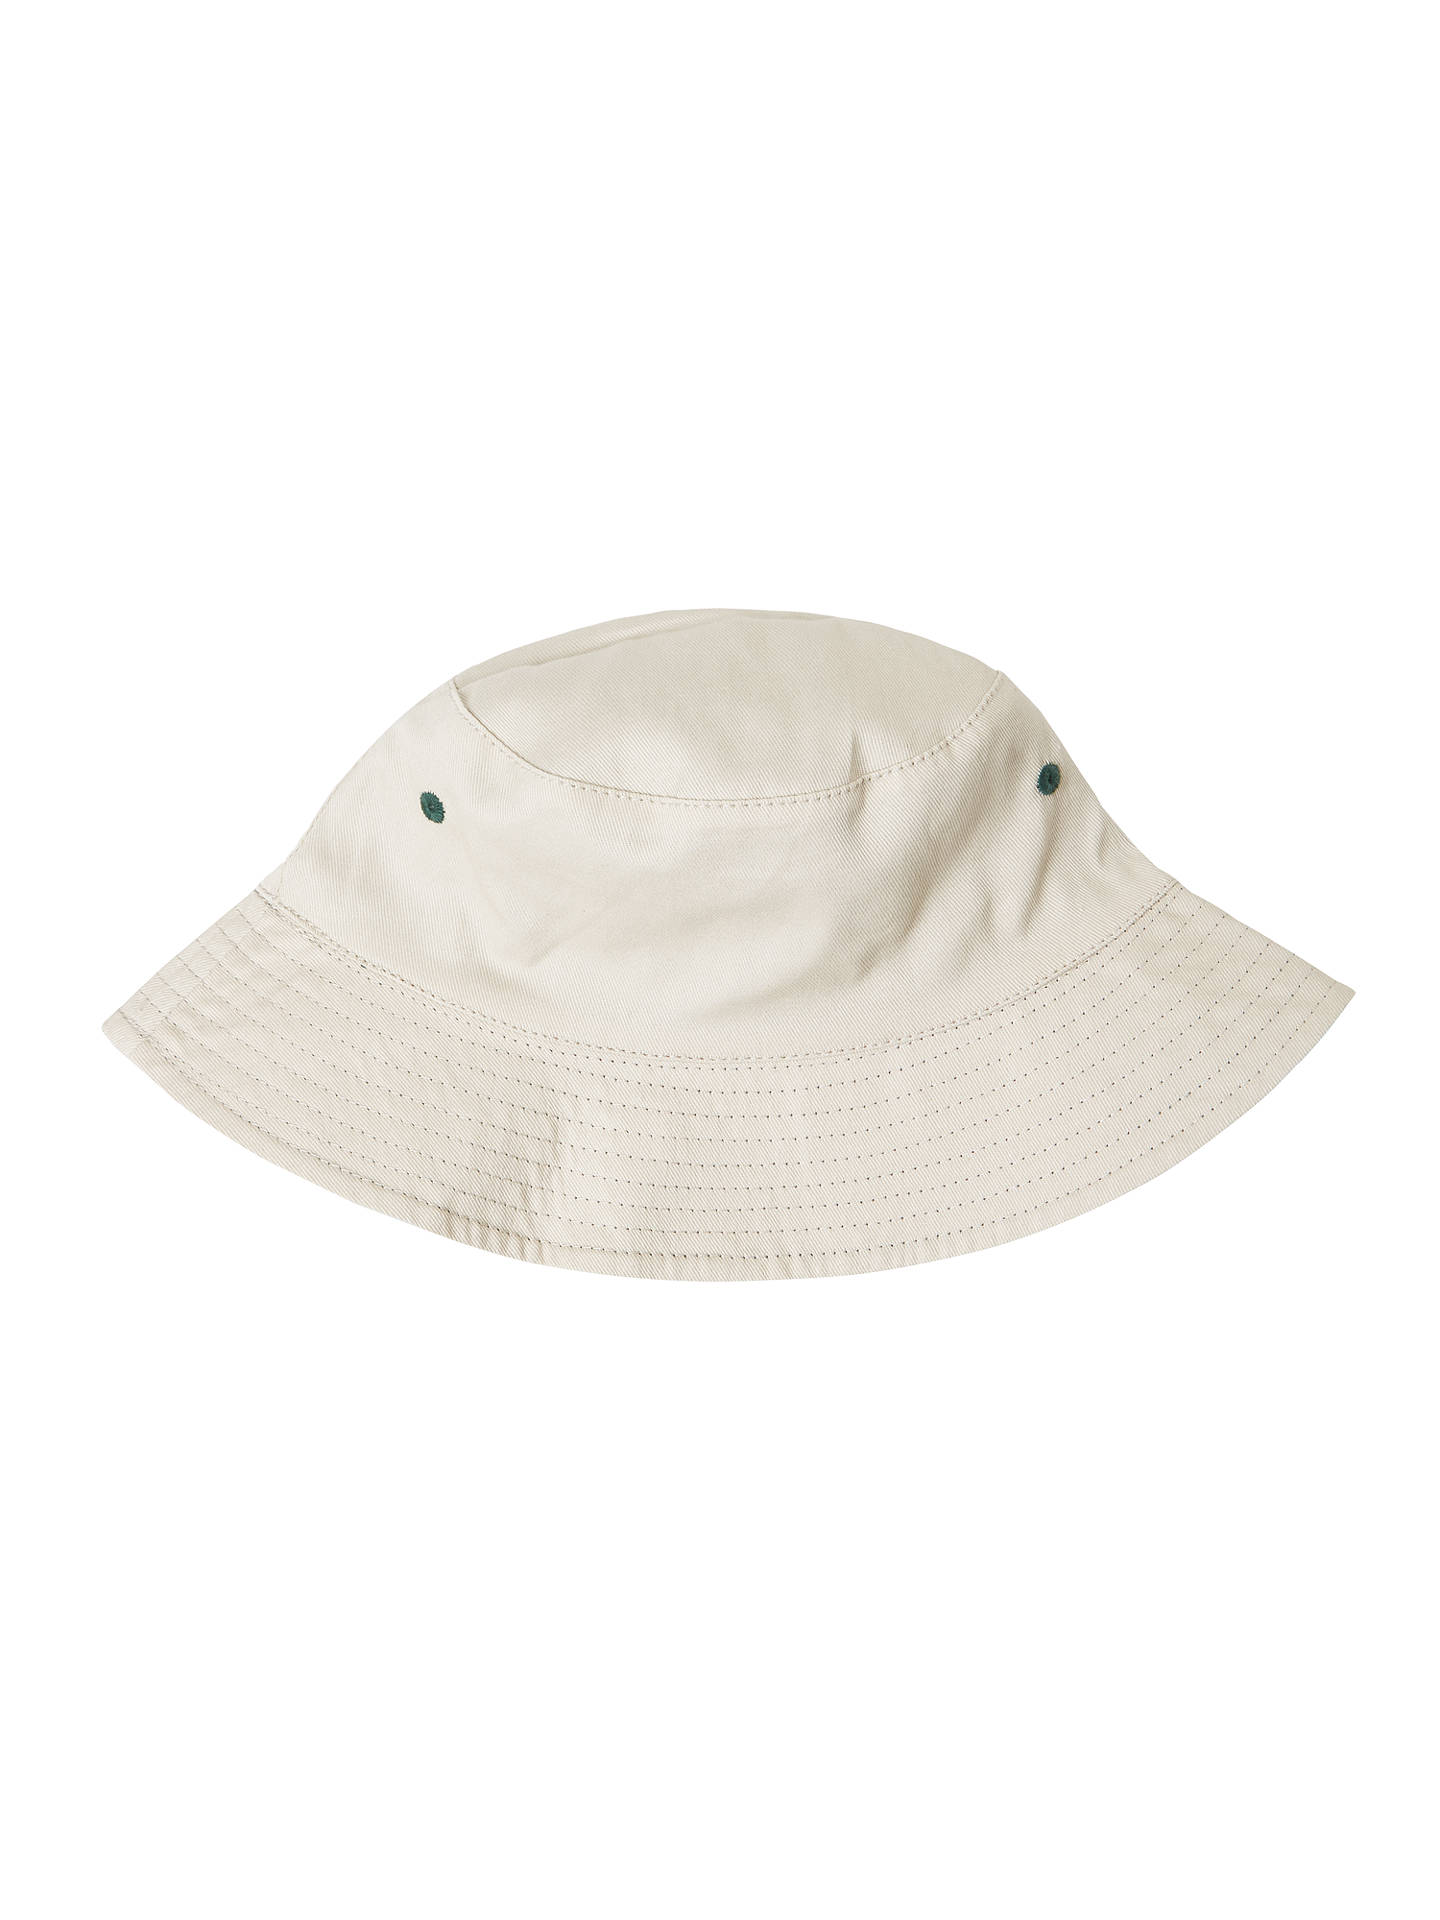 BuyJohn Lewis & Partners Children's Plain Reversible Bucket Hat, Khaki/Beige, S Online at johnlewis.com